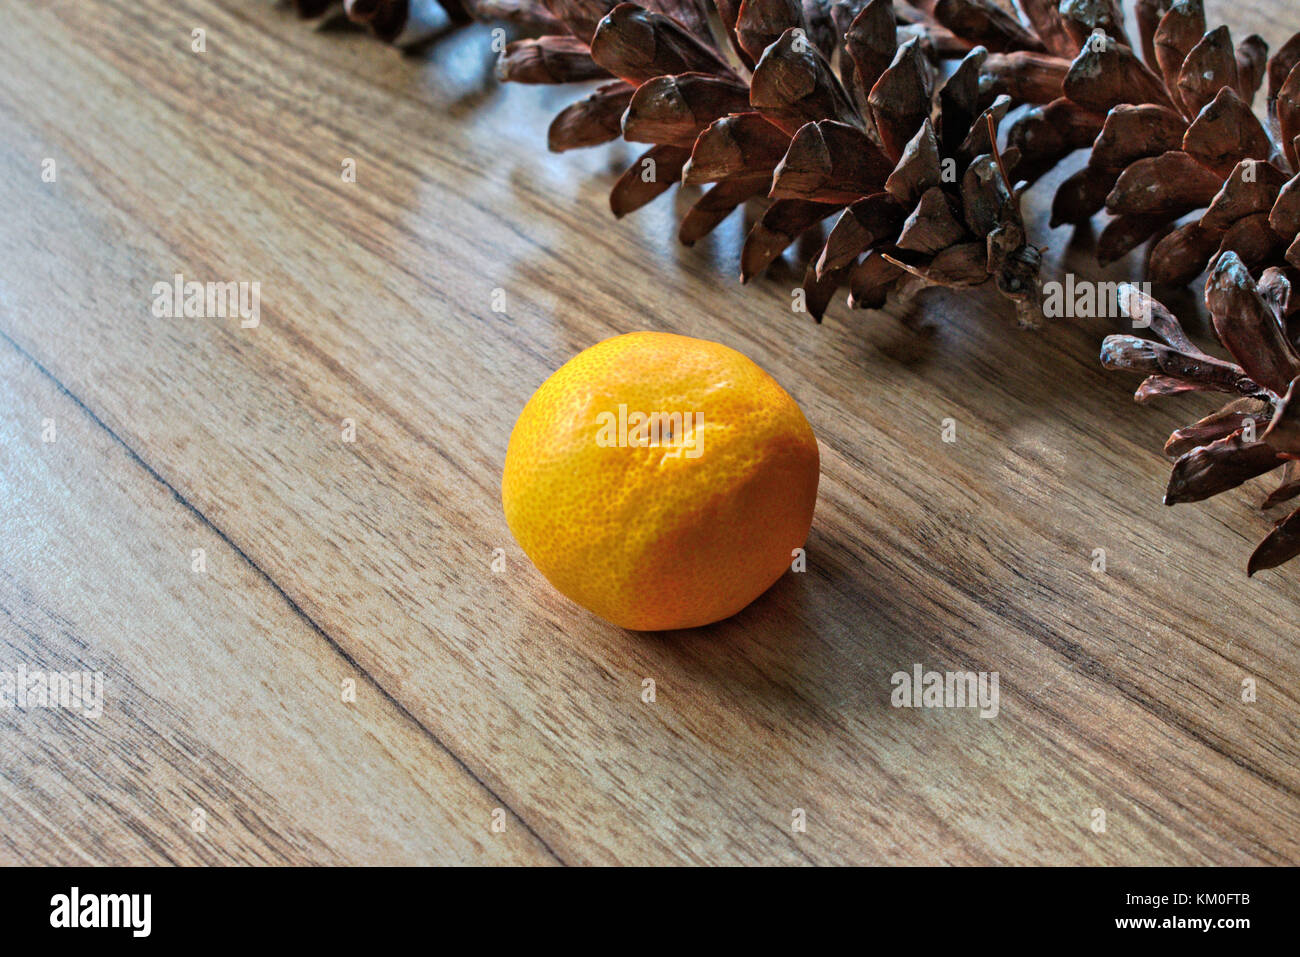 Tangerine and pine cones on a wooden table - Stock Image